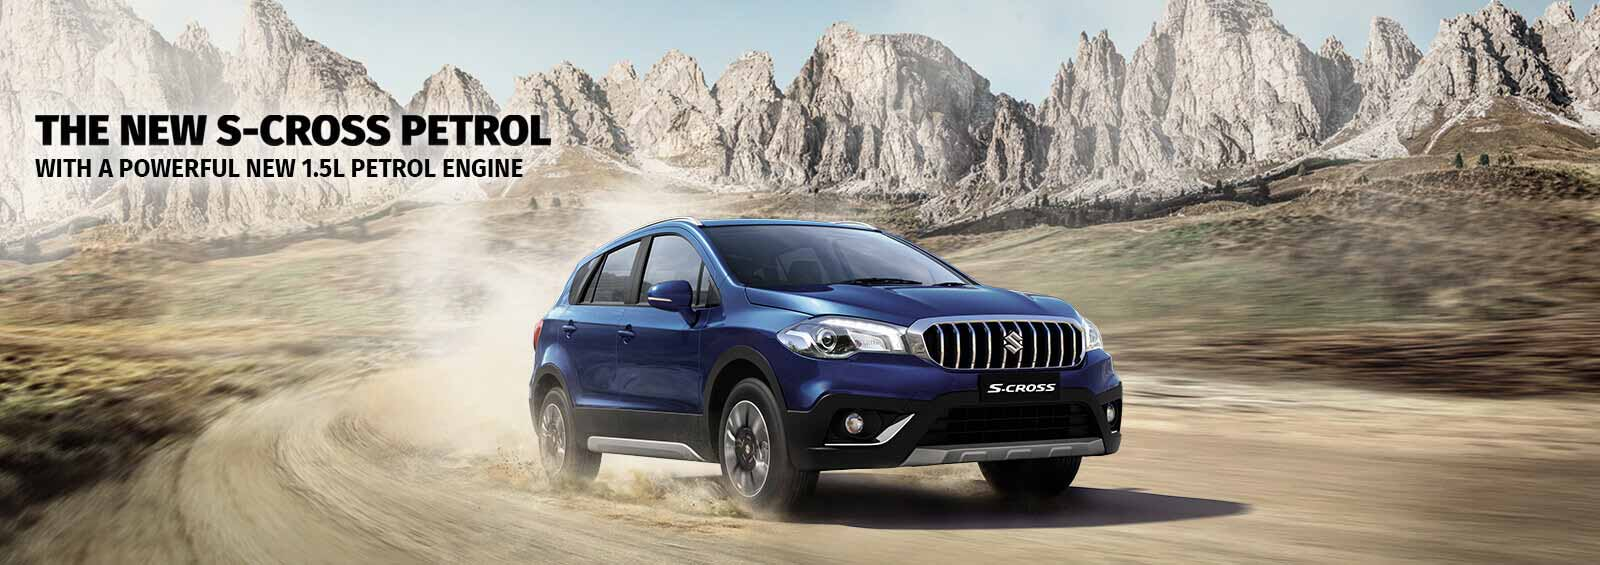 S-Cross Sandhu Automobiles Pvt Ltd GT Road, Ludhiana